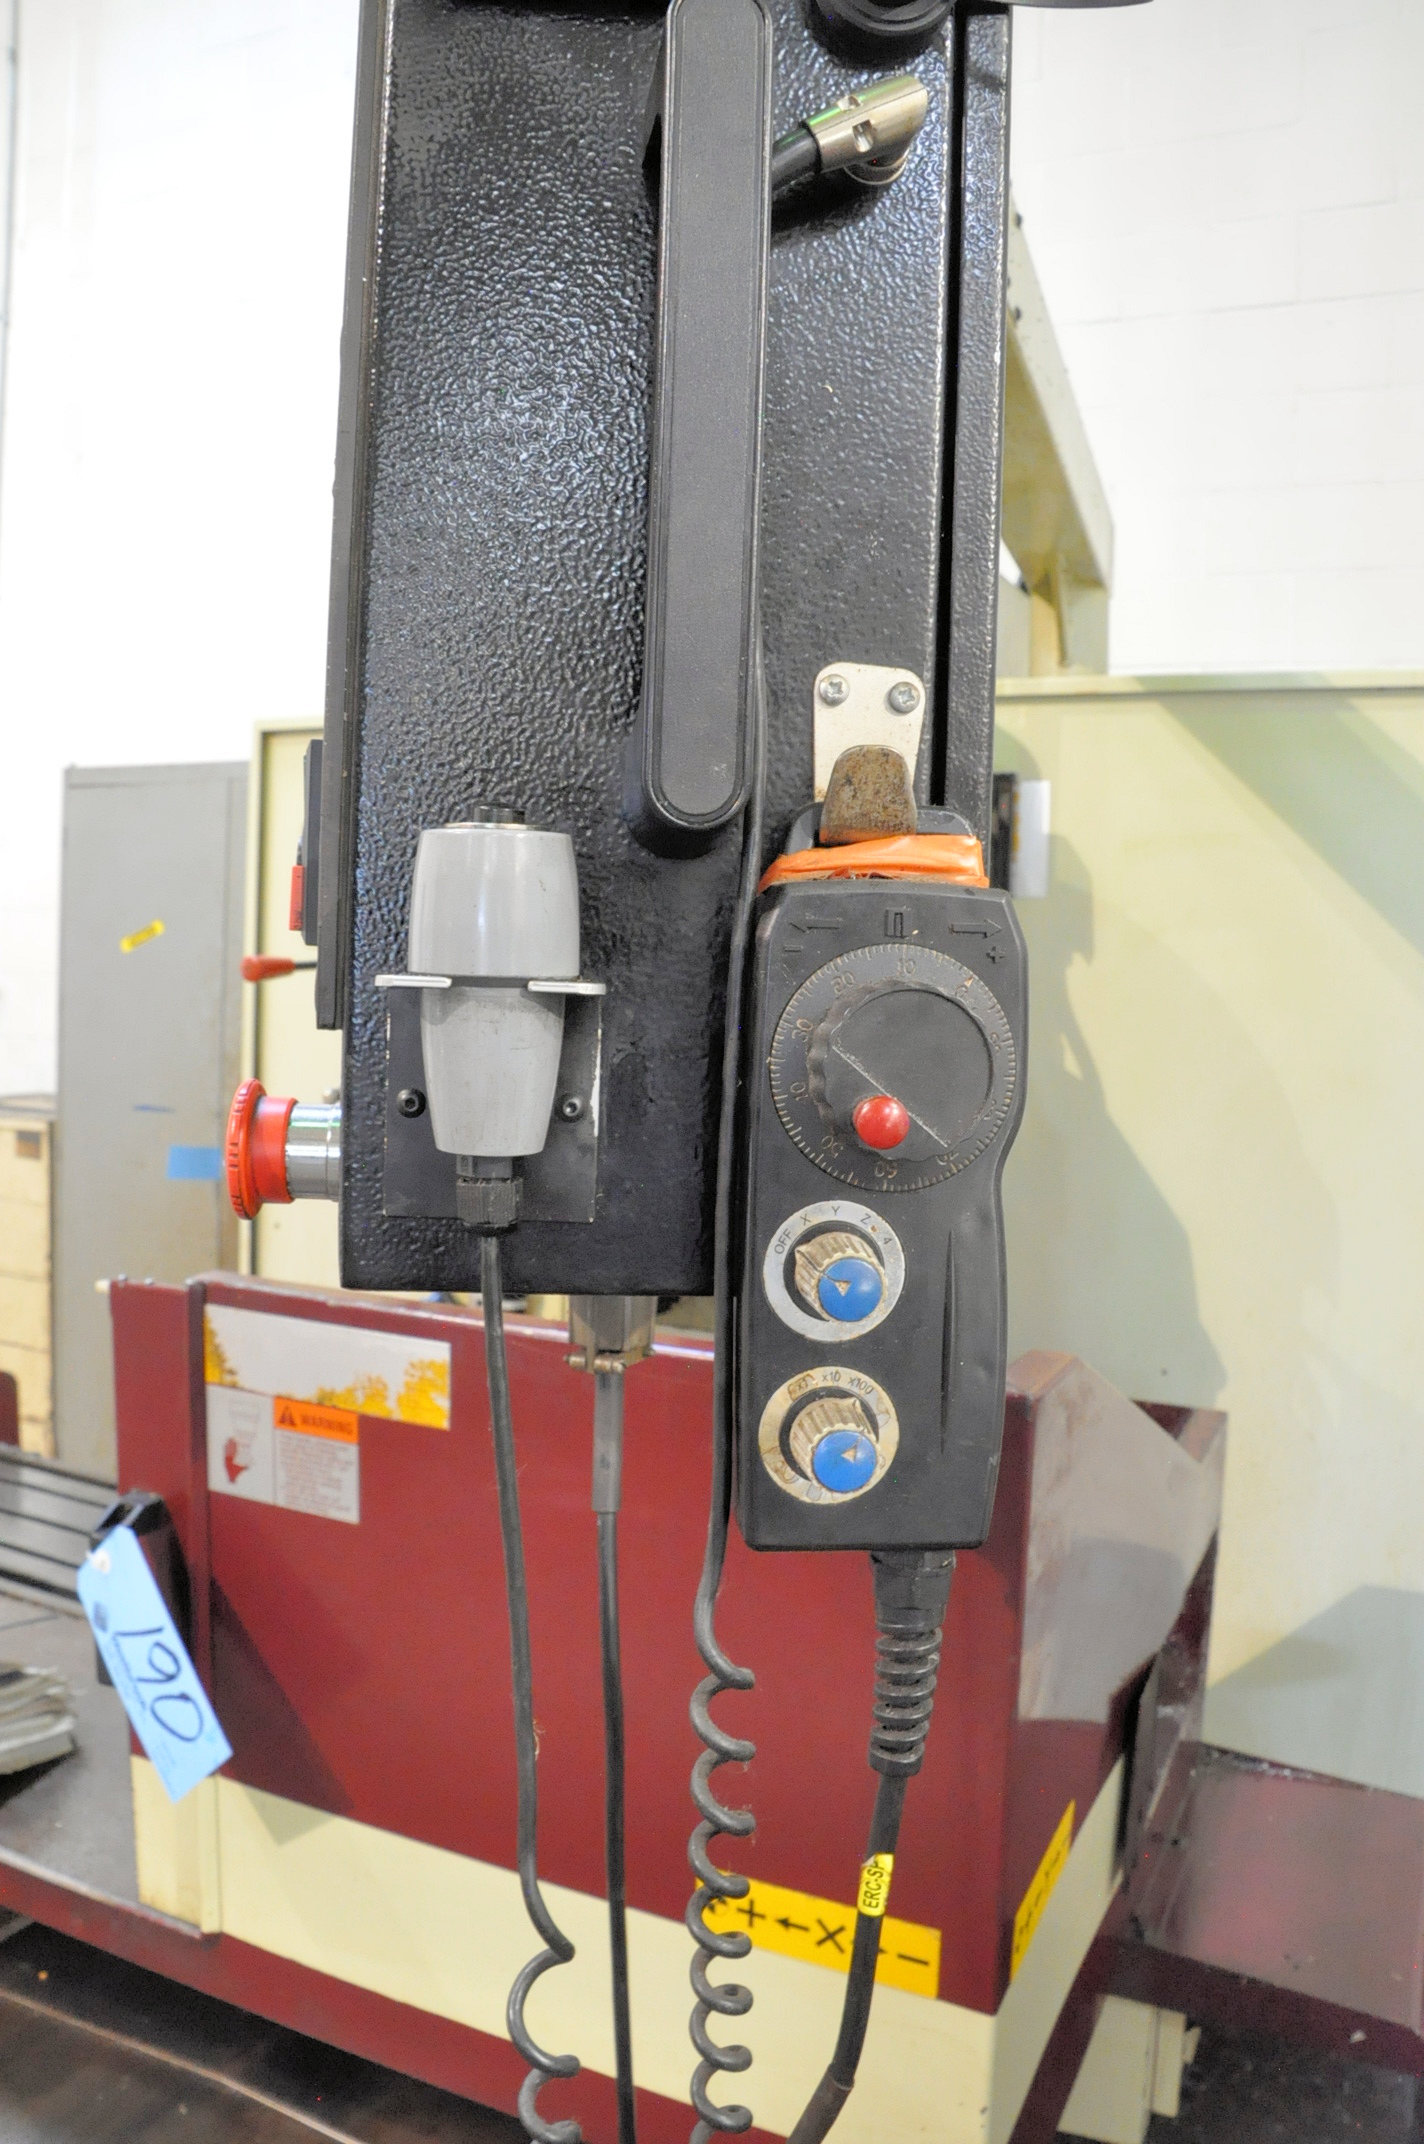 Acer Model E-1454B, 3-Axis CNC Bed Type Vertical Milling Machine, Fagor Control 5-HP (2009) - Image 6 of 7